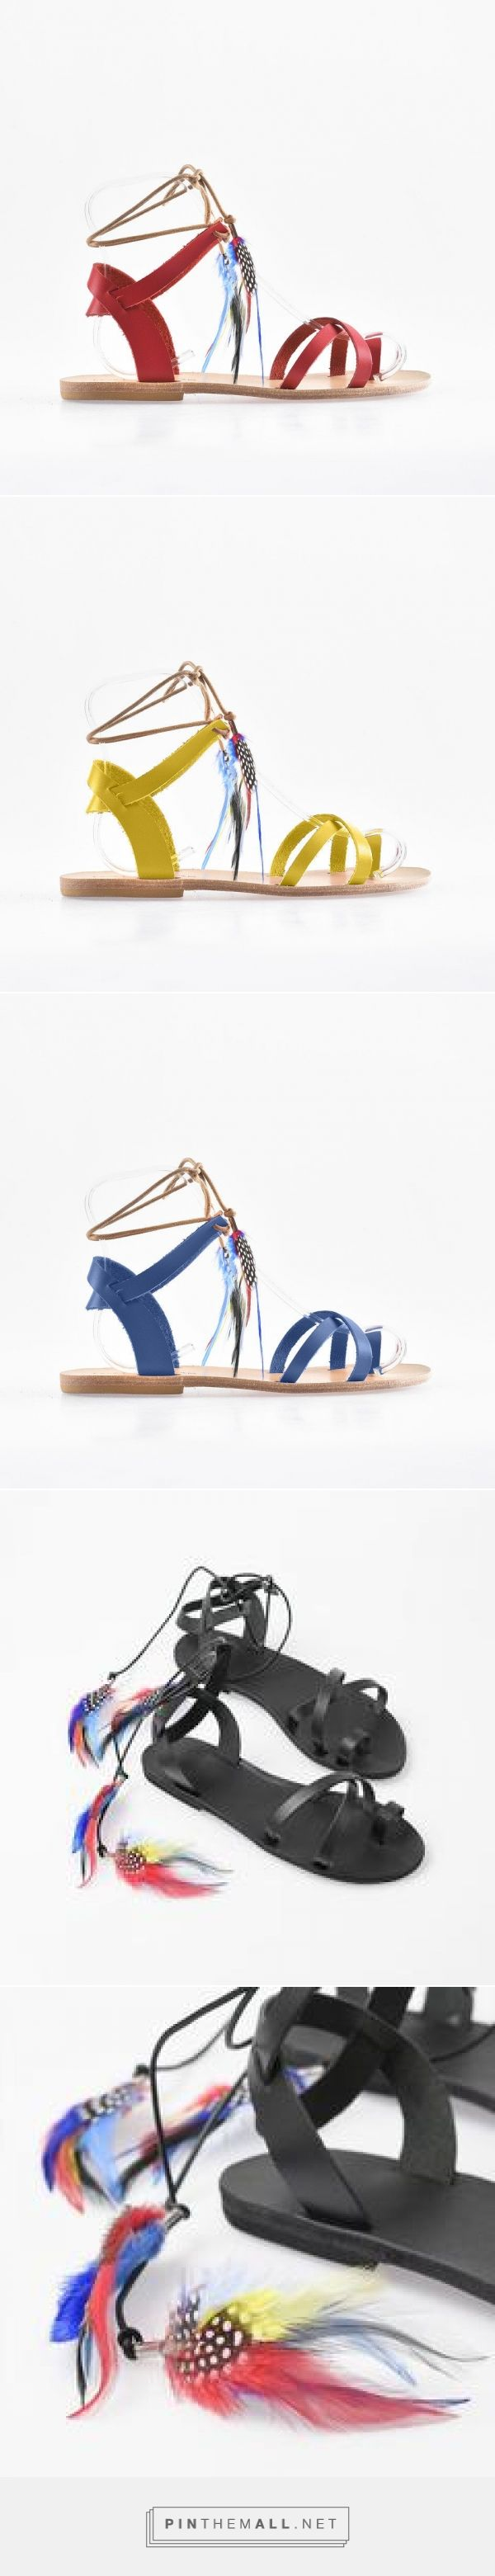 Calypso Tropicana leather sandals – Love From Cyprus - created via https://pinthemall.net